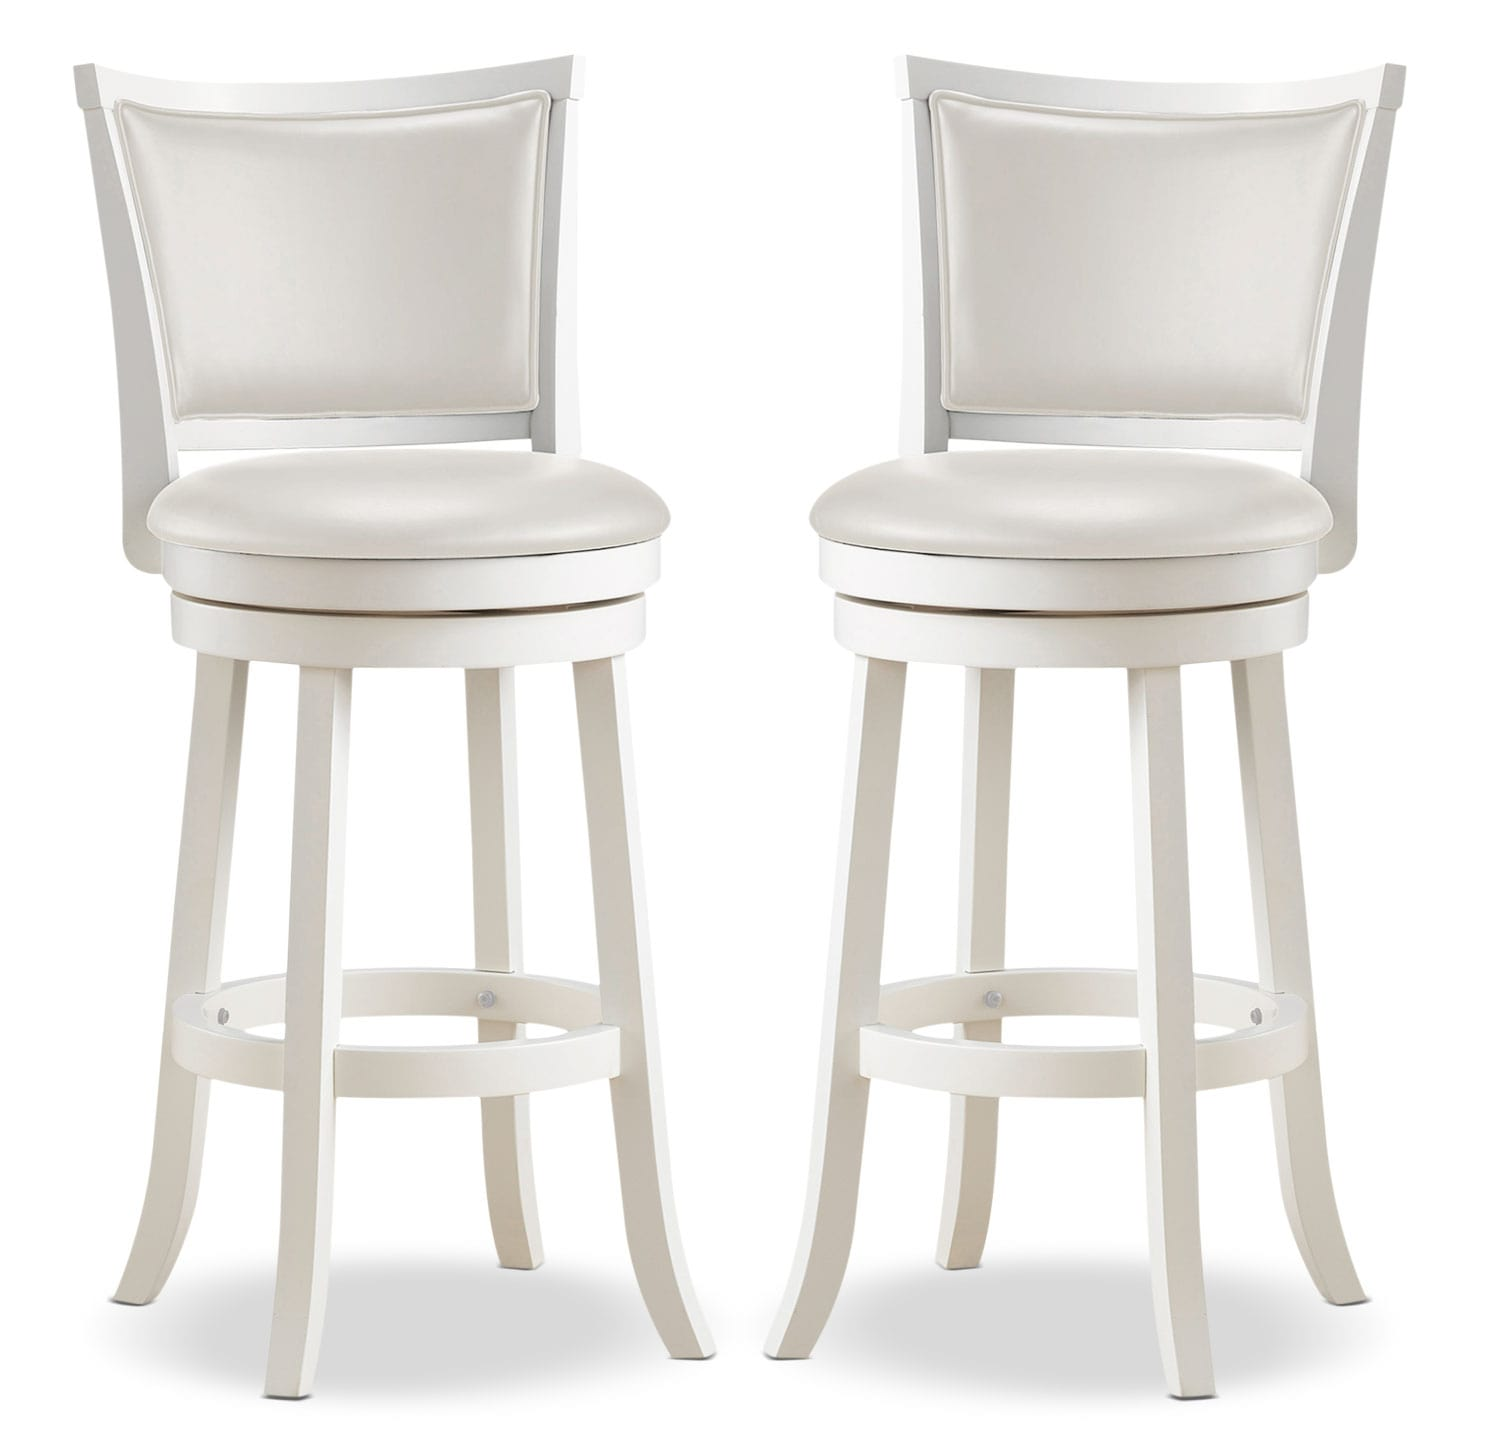 Woodgrove Bar-Height Dining Stool, Set of 2